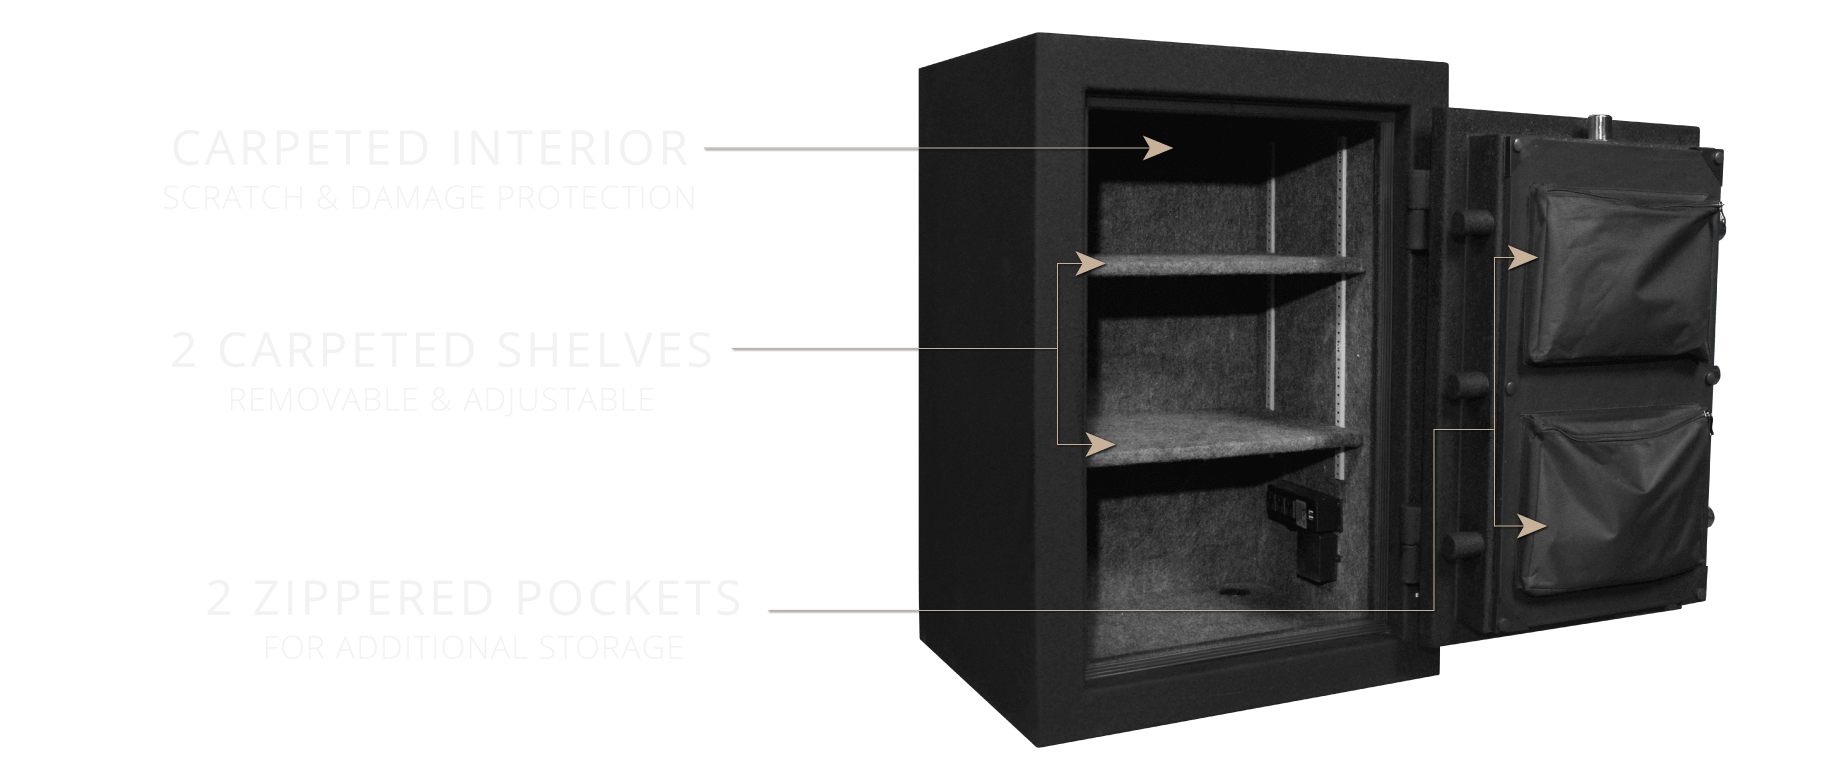 Stealth HS8 UL Home Safe Interior Shelves and Storage